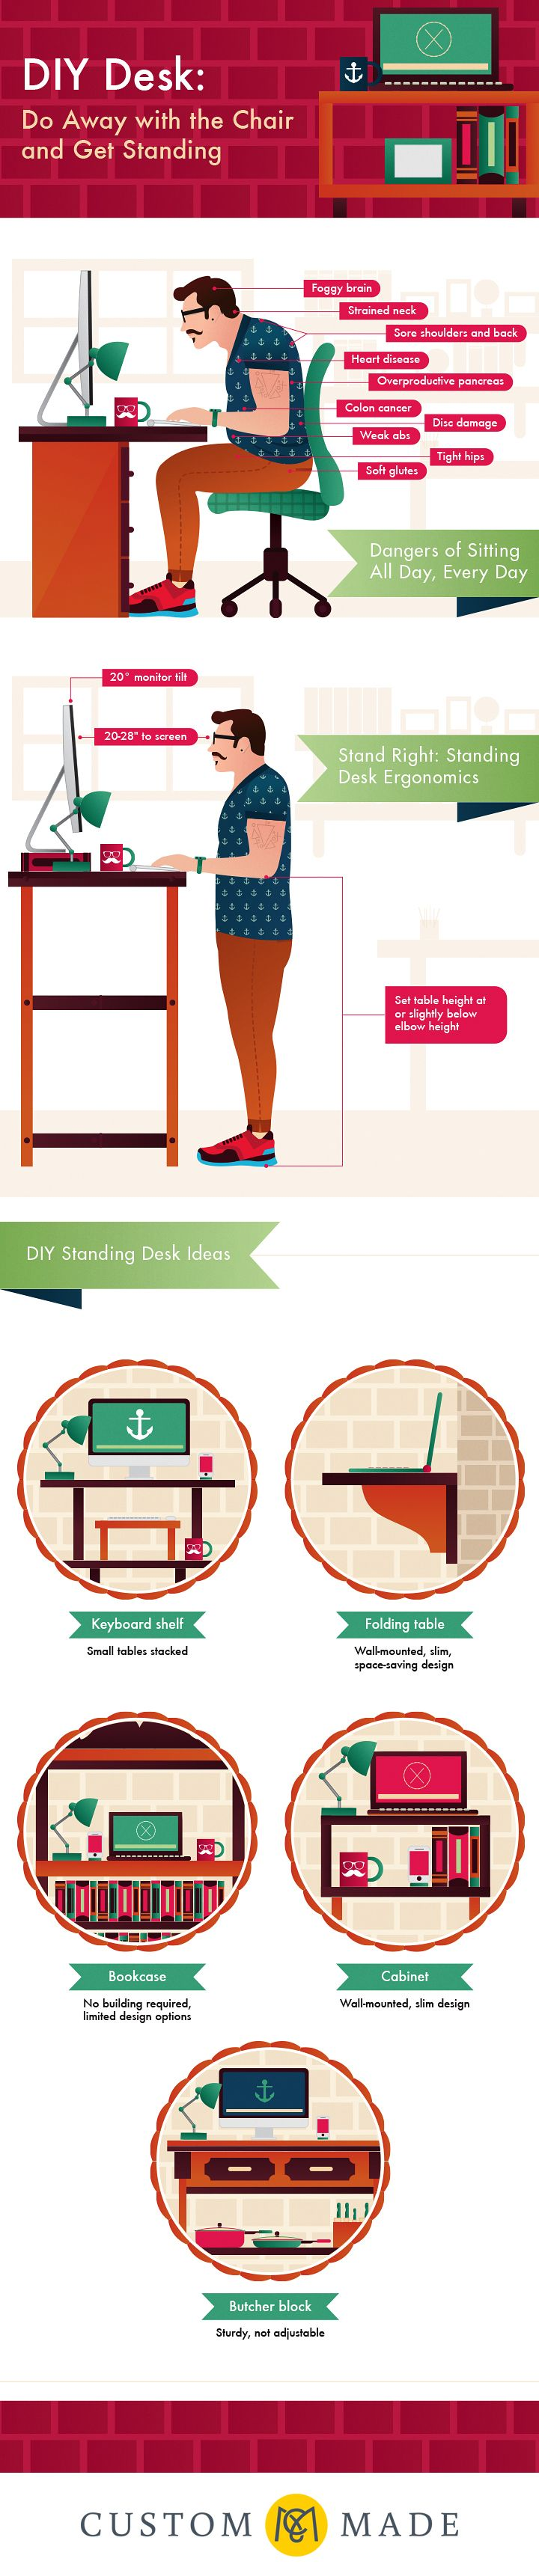 die besten 25 diy standing desk ideen auf pinterest stehpulte rednerpult und laptopgestell. Black Bedroom Furniture Sets. Home Design Ideas